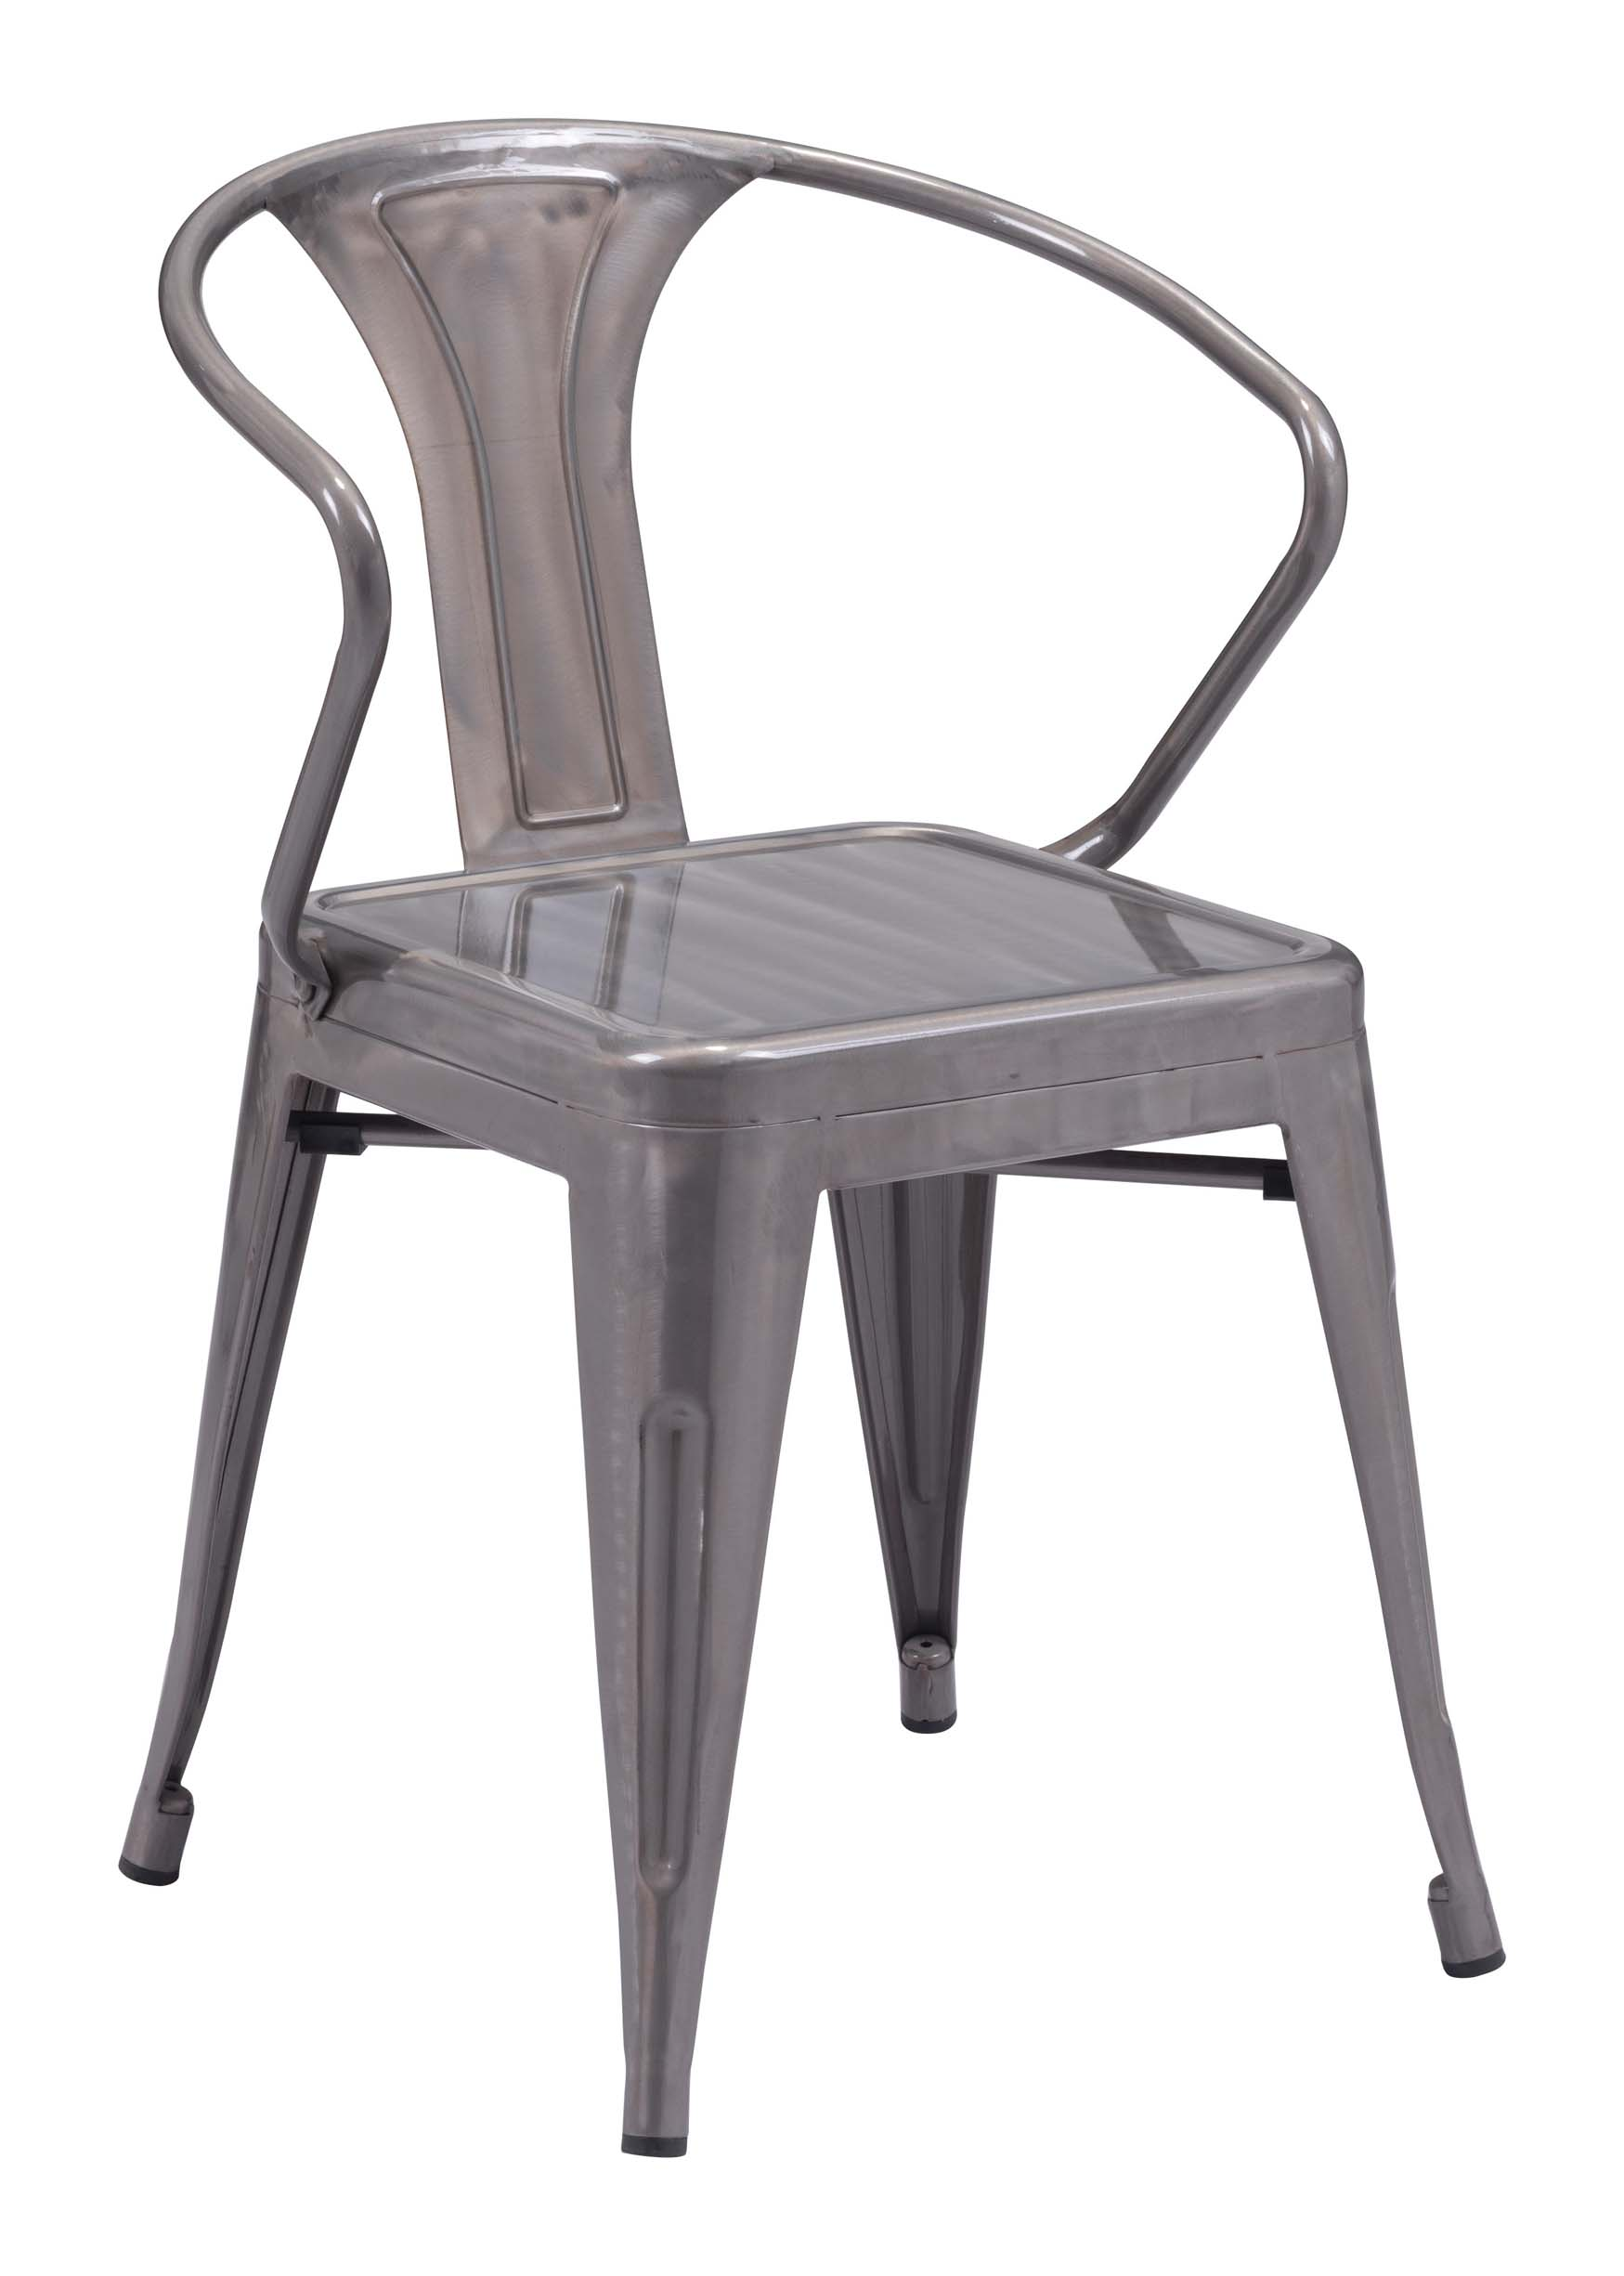 zuo helix dining chair